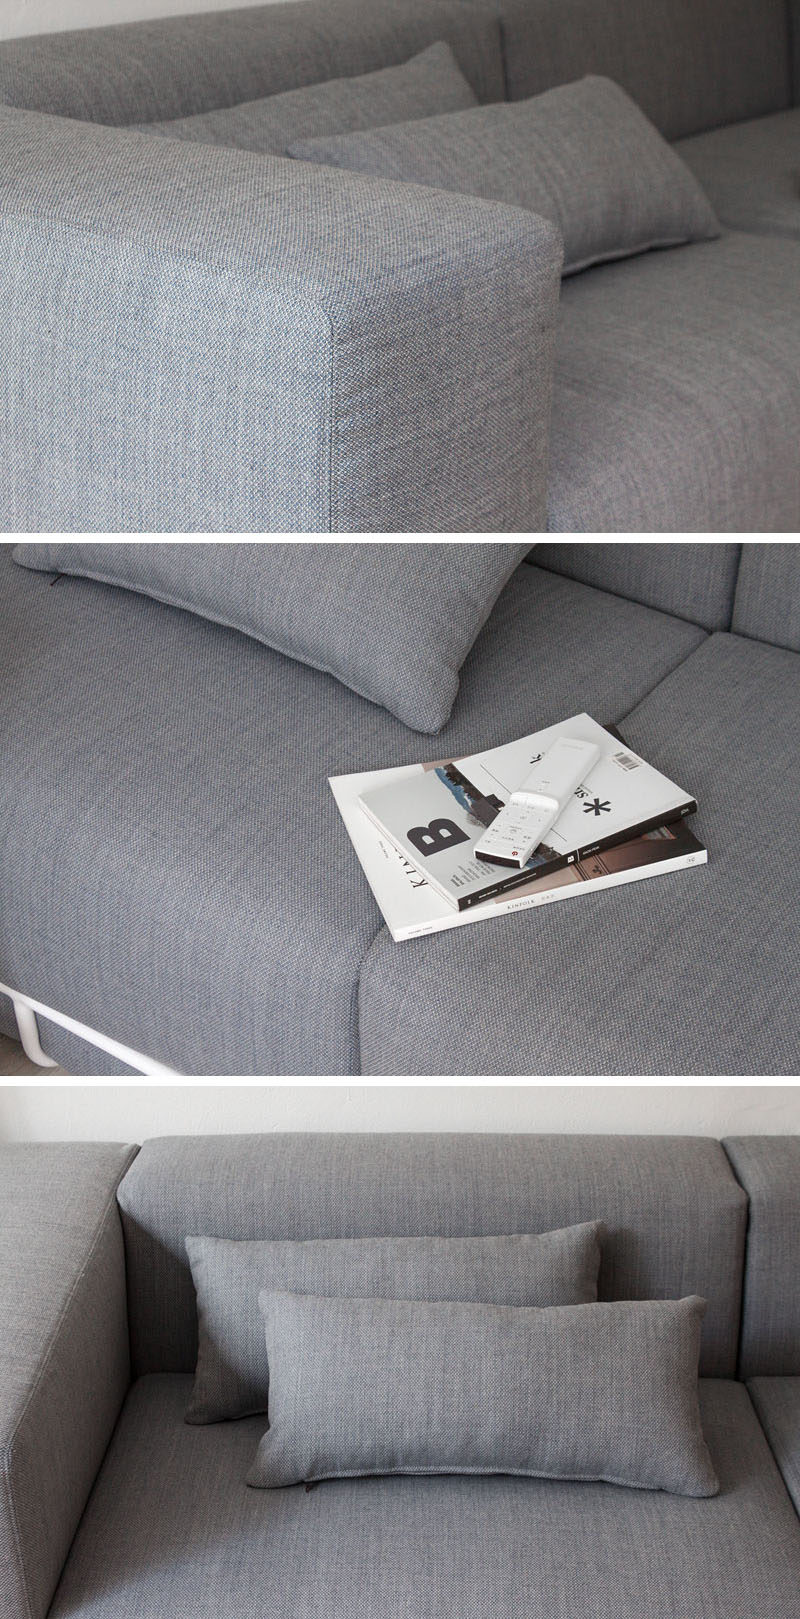 Seoul based designer Cho hyung suk, has designed a modern grey couch that sits within an exposed white metal frame.